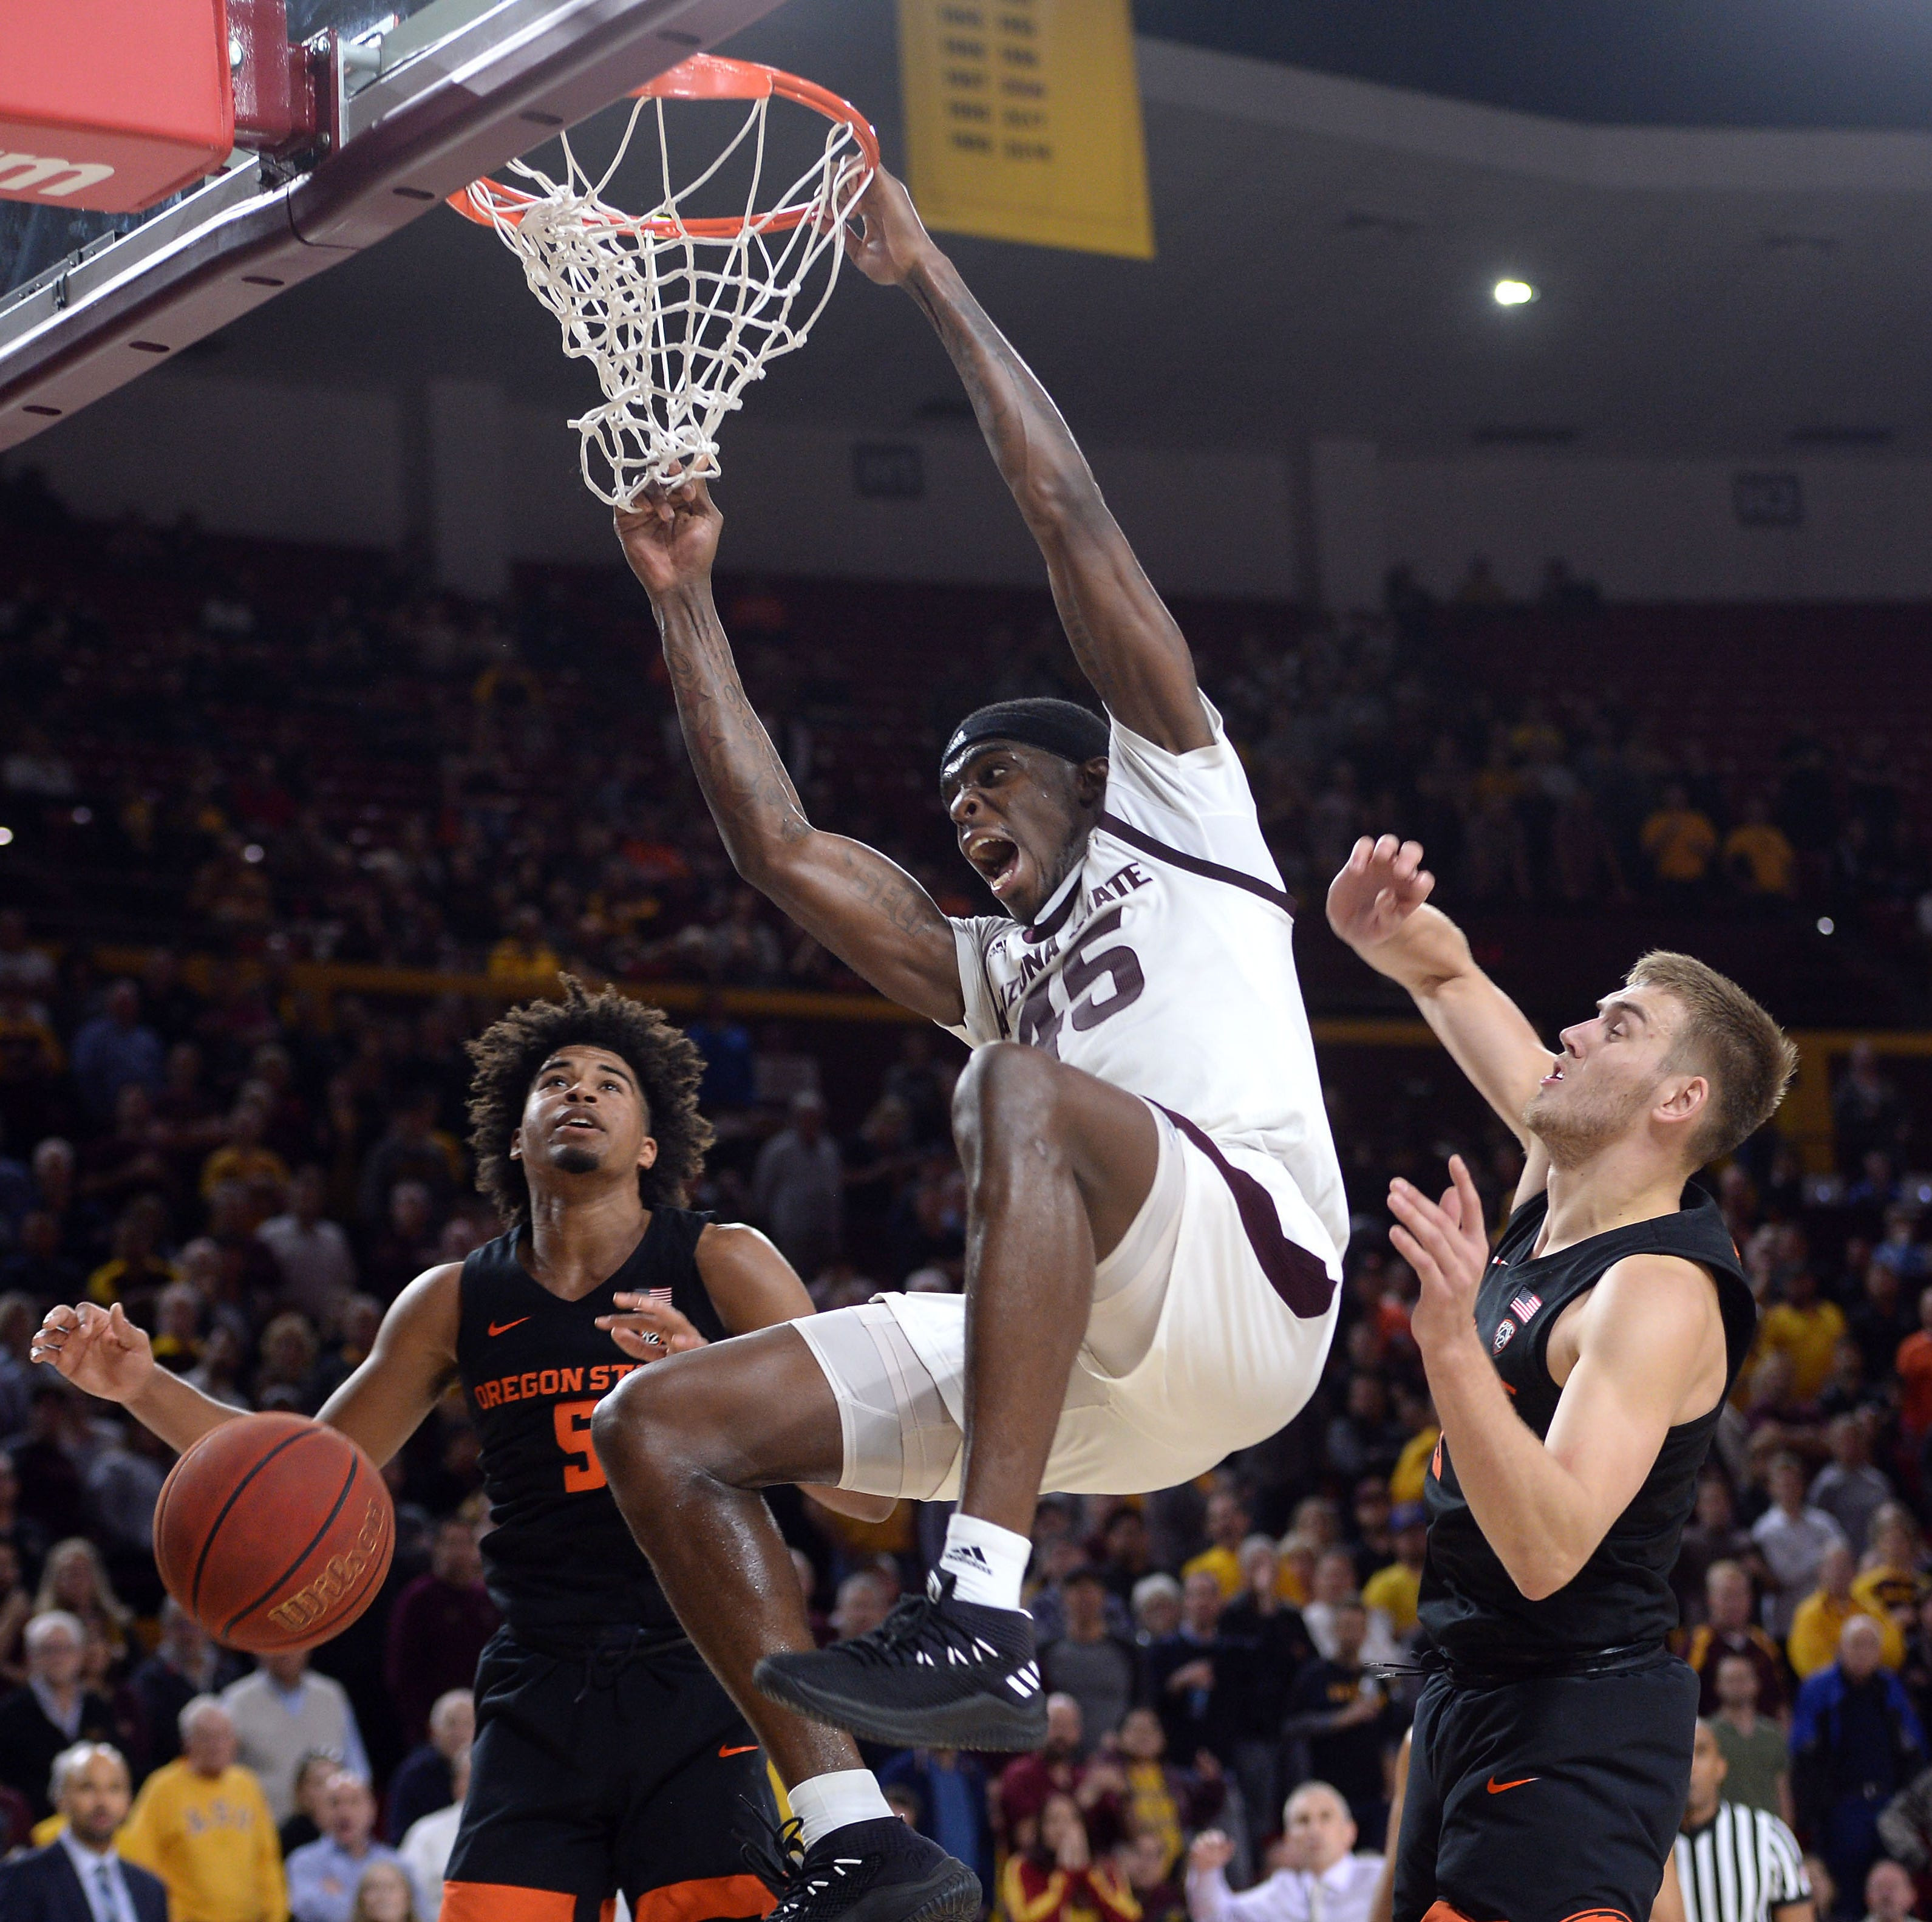 NCAA Tournament projections: ASU, Arizona and Grand Canyon in March Madness?